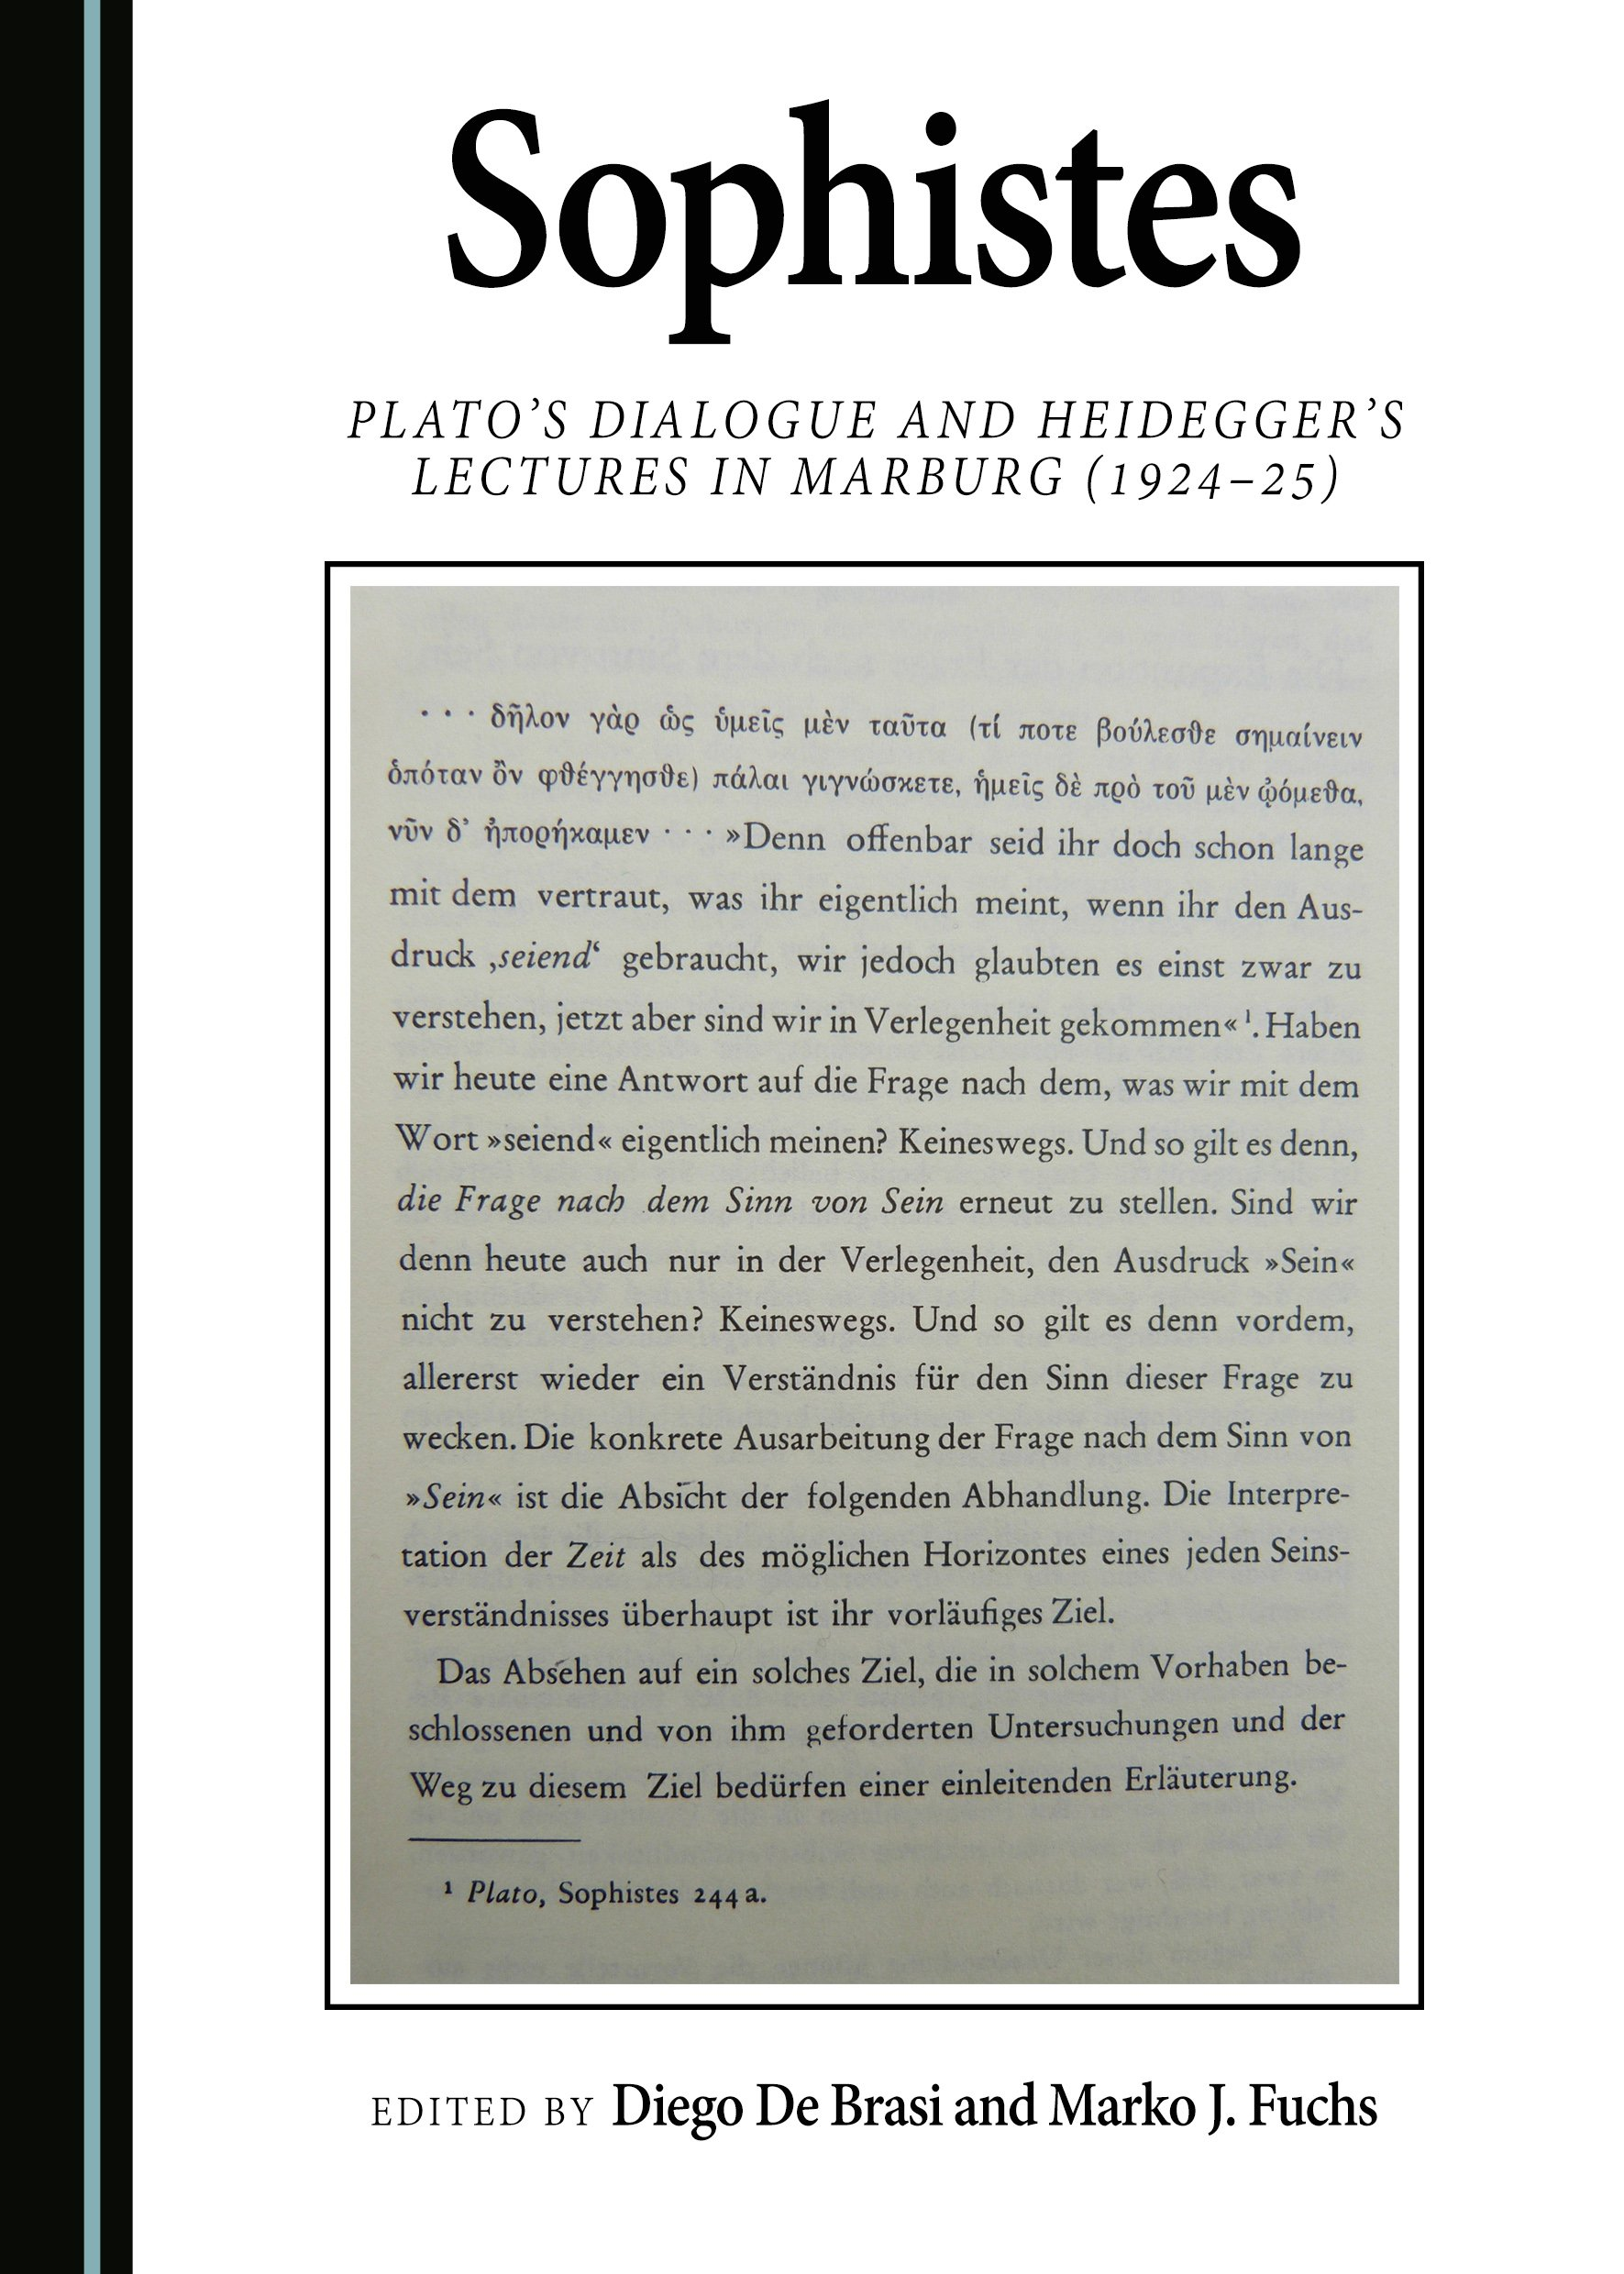 Sophistes: Plato's Dialogue and Heidegger's Lectures in Marburg (1924-25)